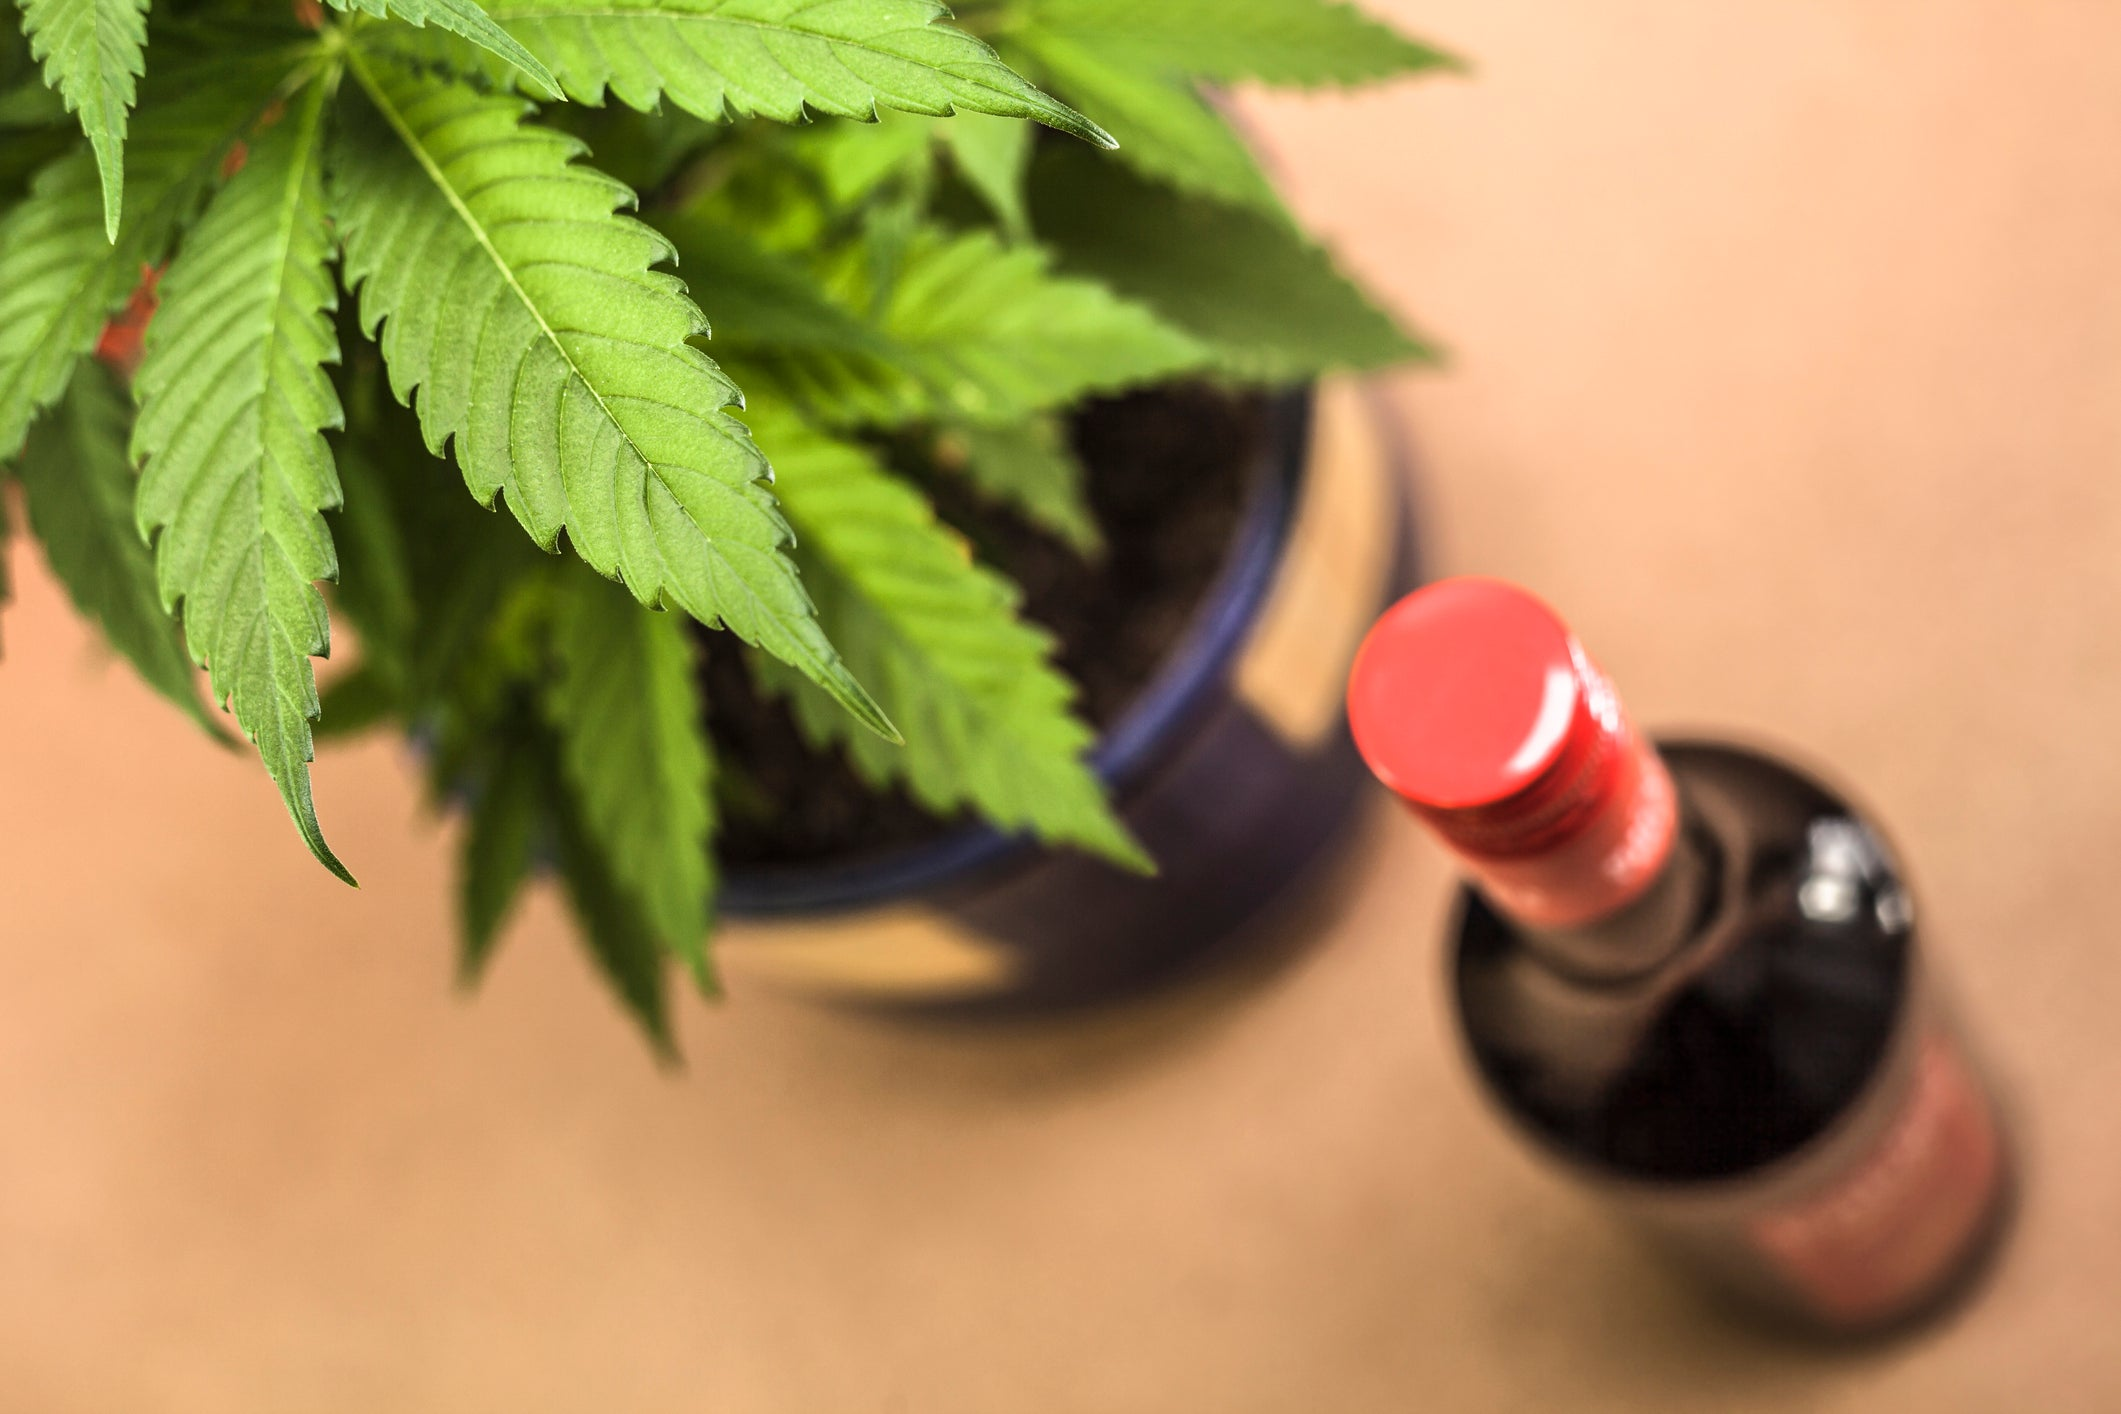 A potted cannabis plant next to an unopened bottle of wine.